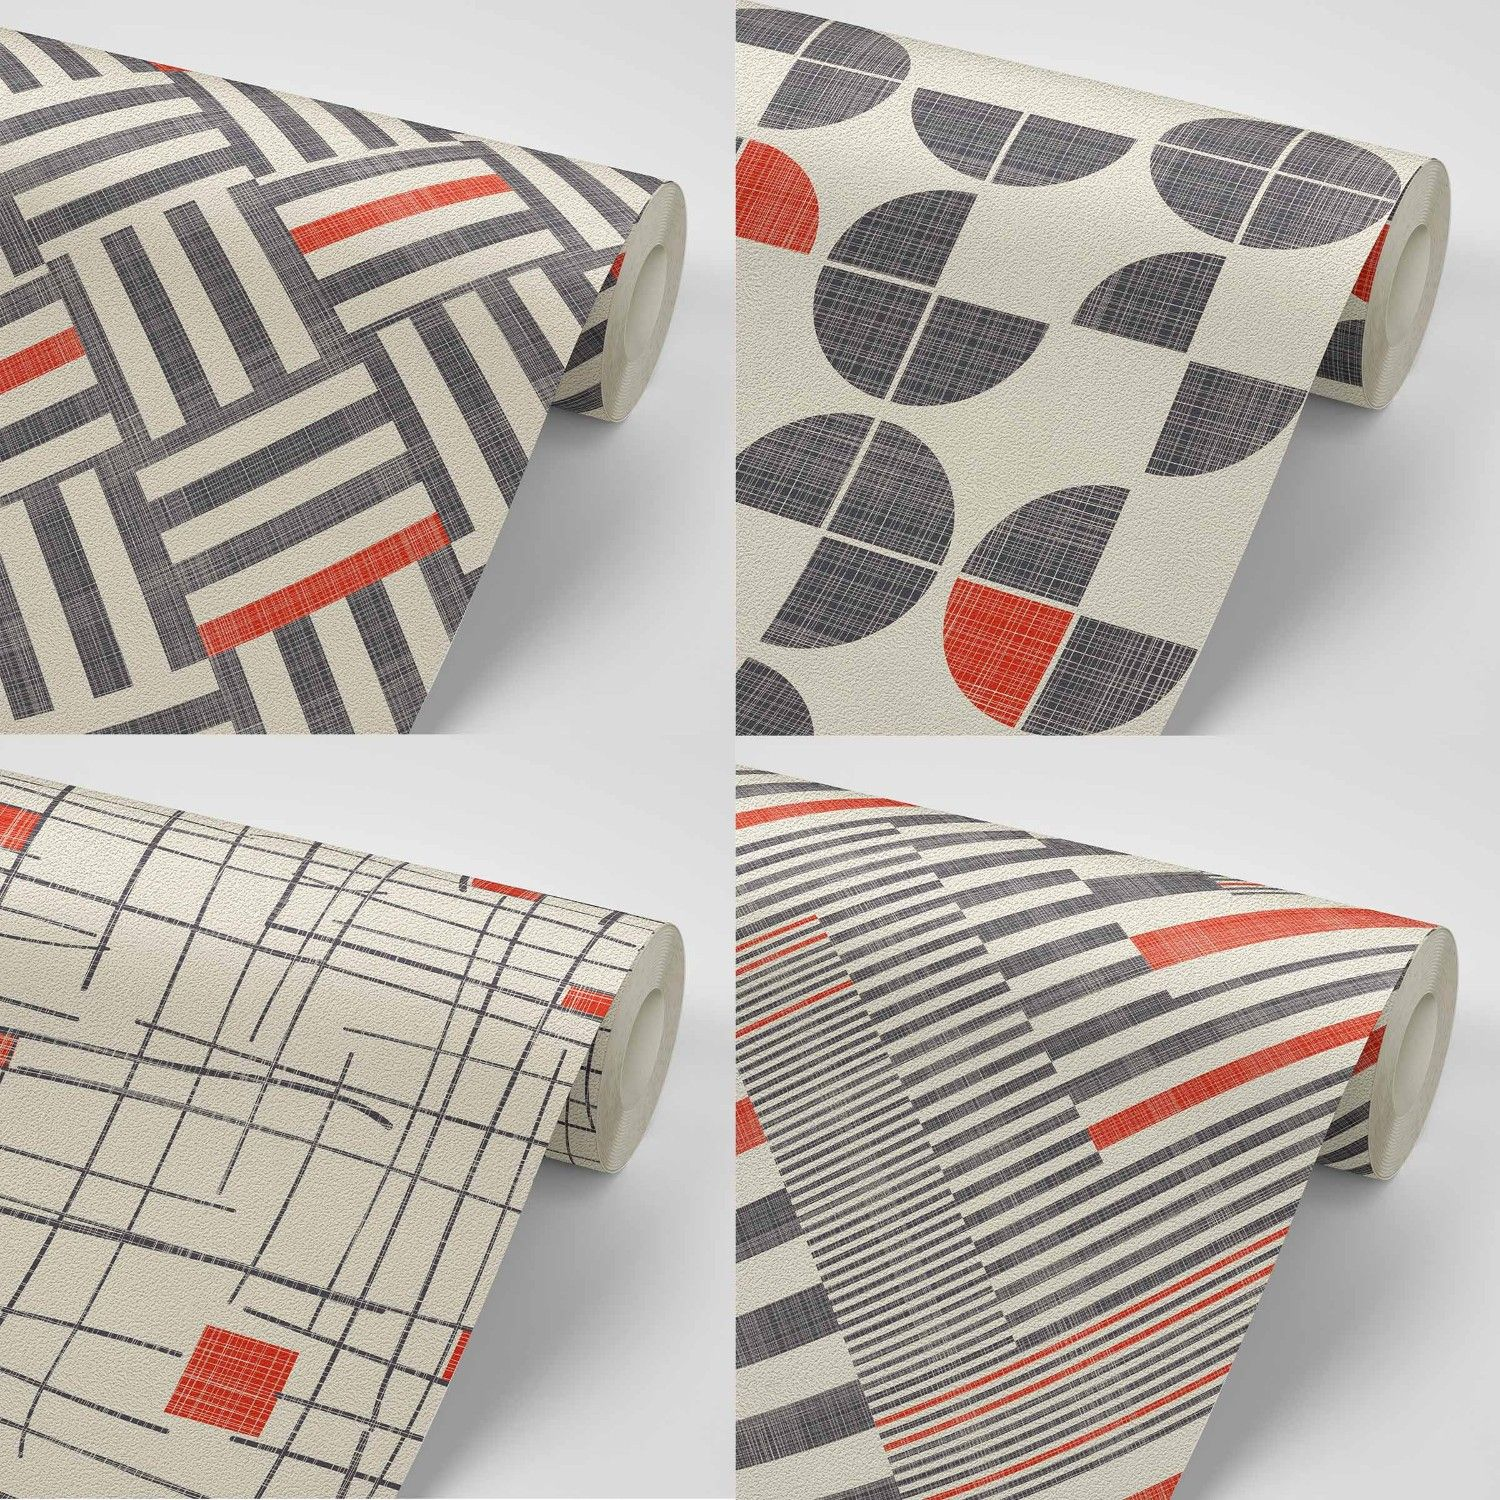 geometric twist concept wallpaper rolls